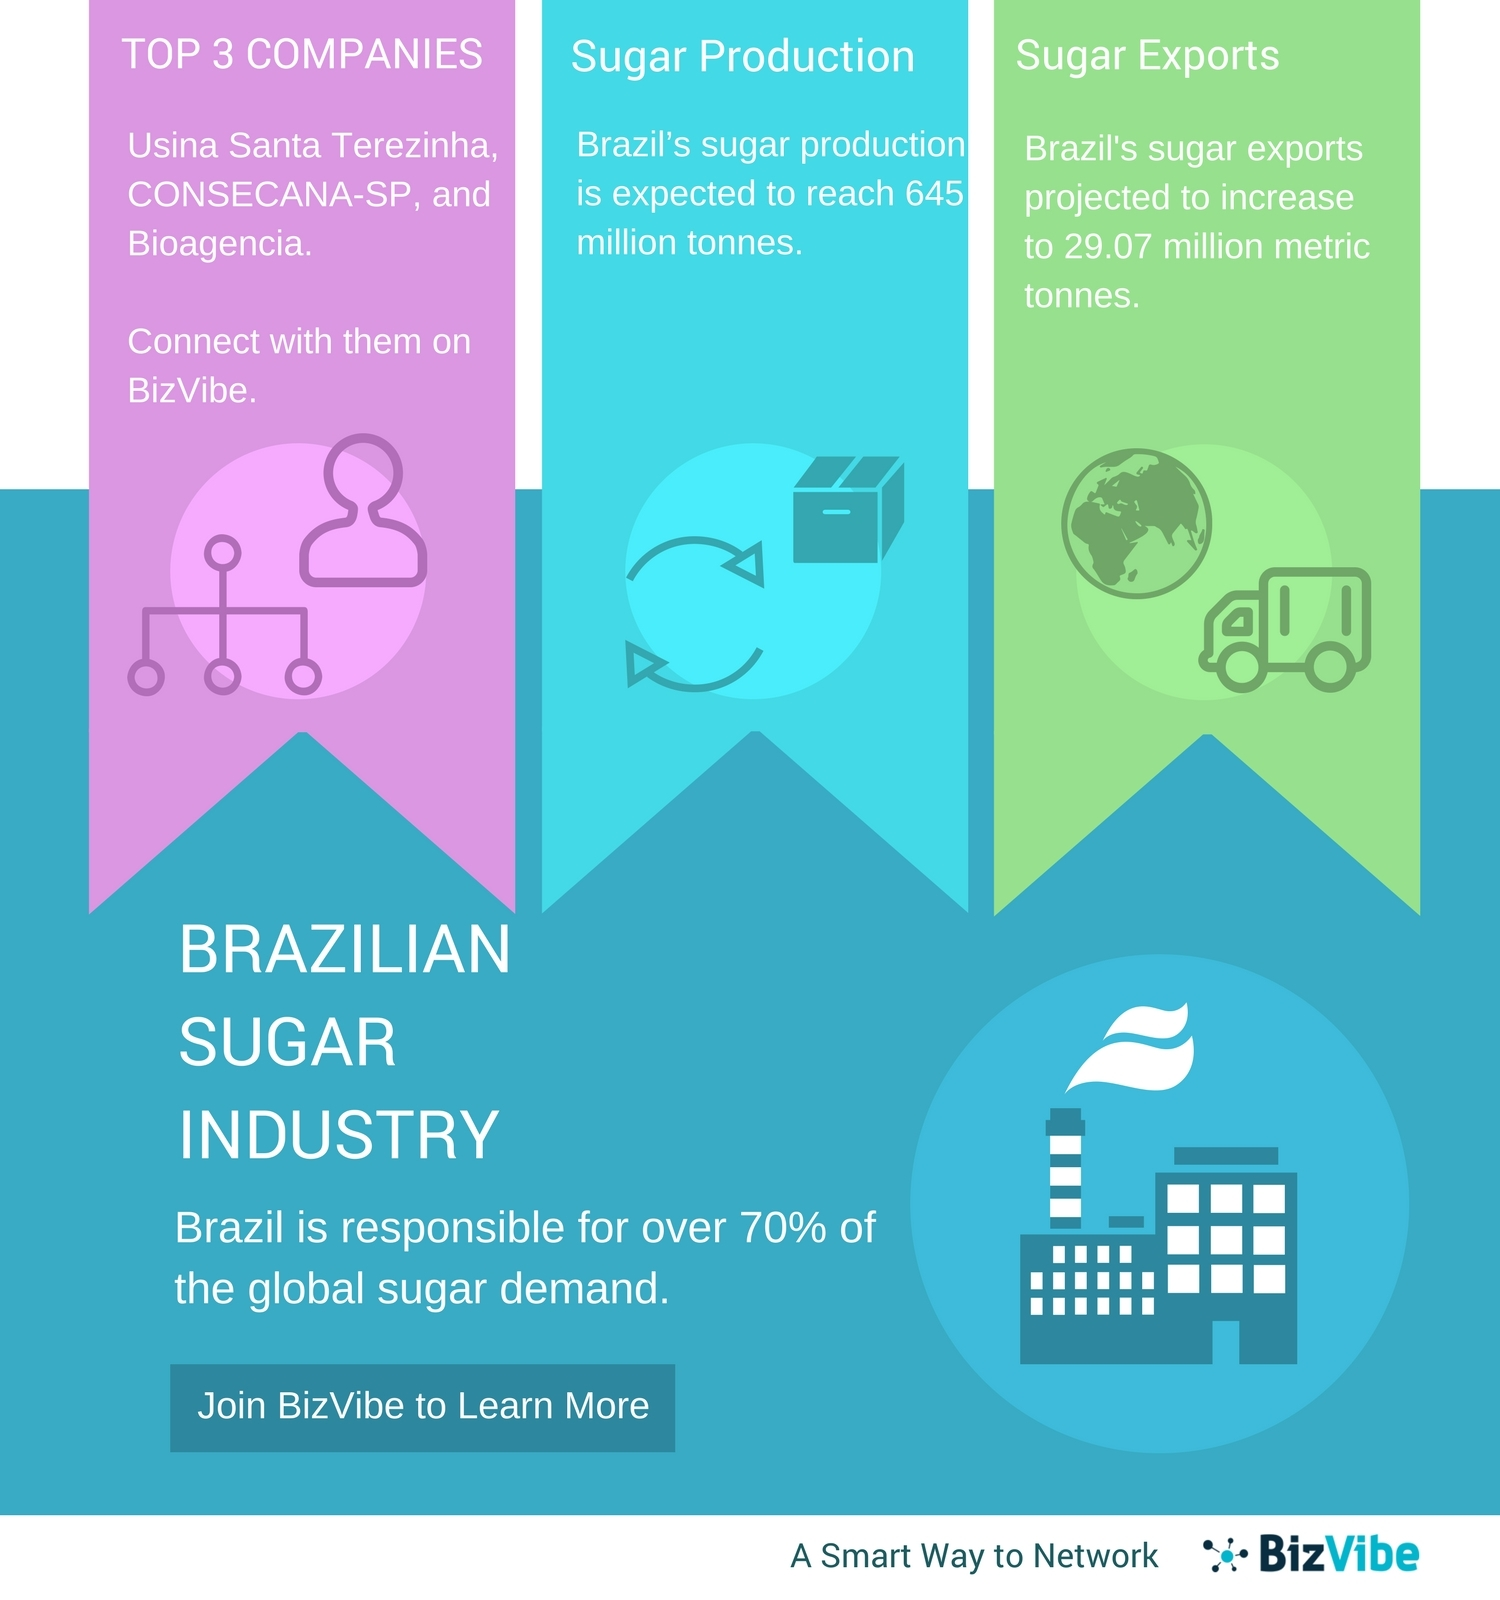 Brazilian Sugar Industry – BizVibe's New B2B Networking Platform for